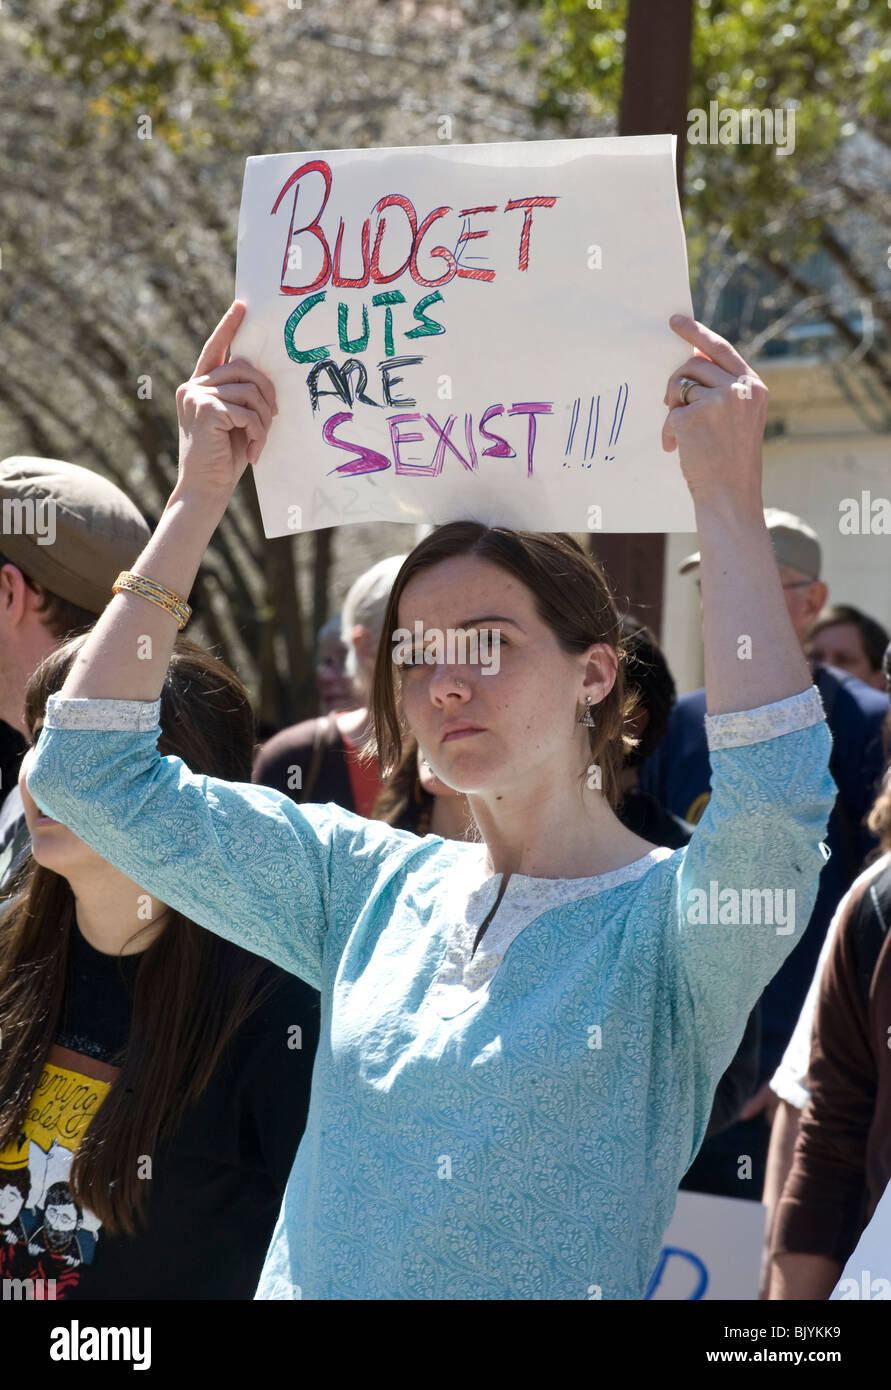 female college student holds sign saying budget cuts are sexist at